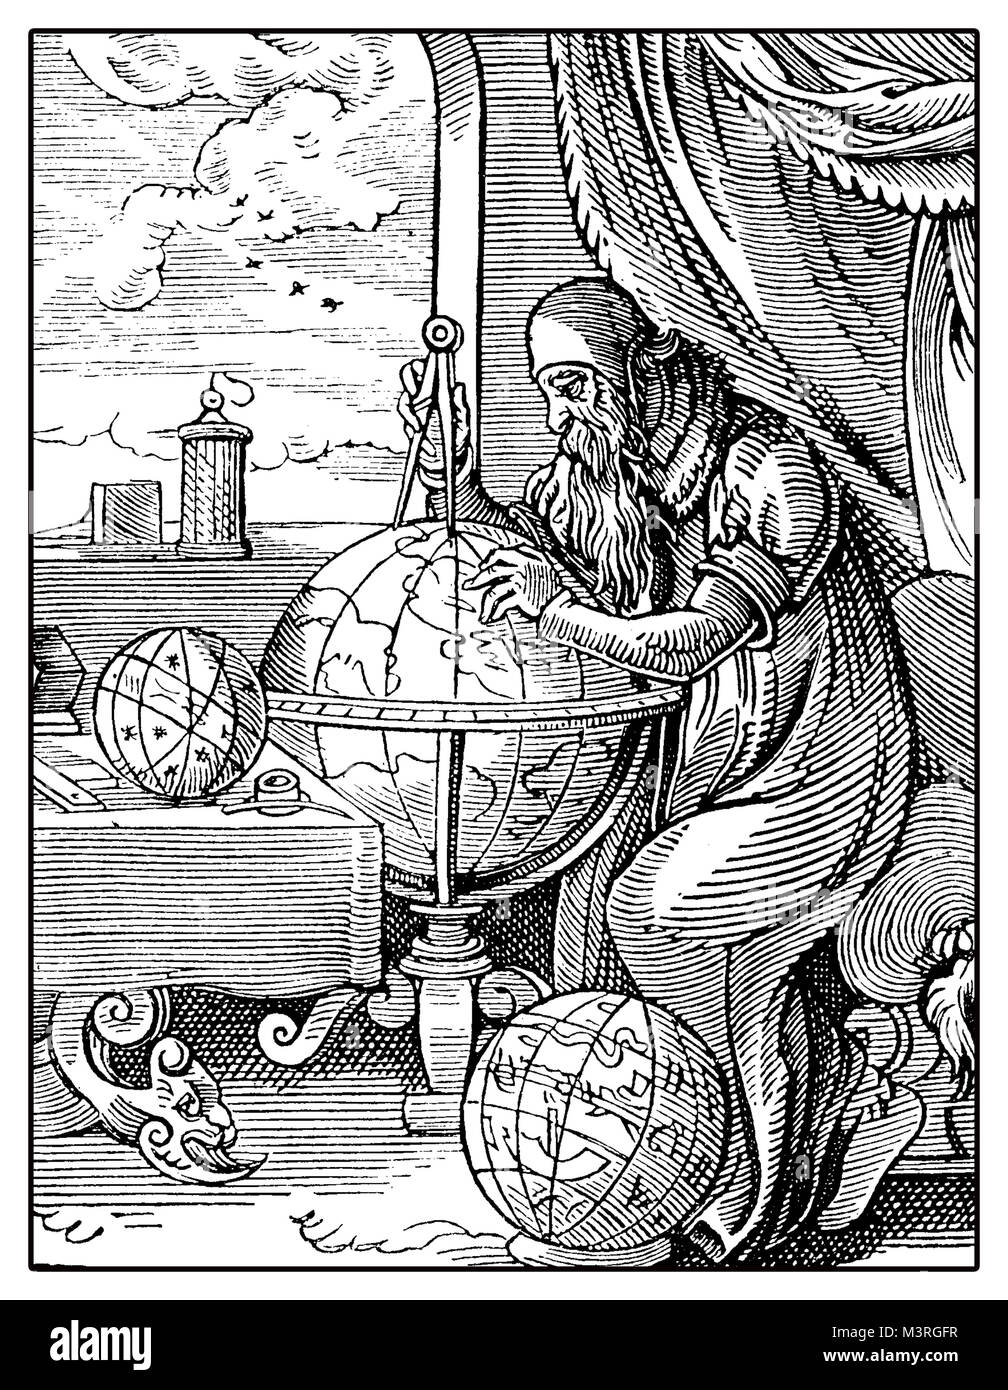 Portrait of medieval geographer with globe and compass at great discovery times, vintage engraving - Stock Image